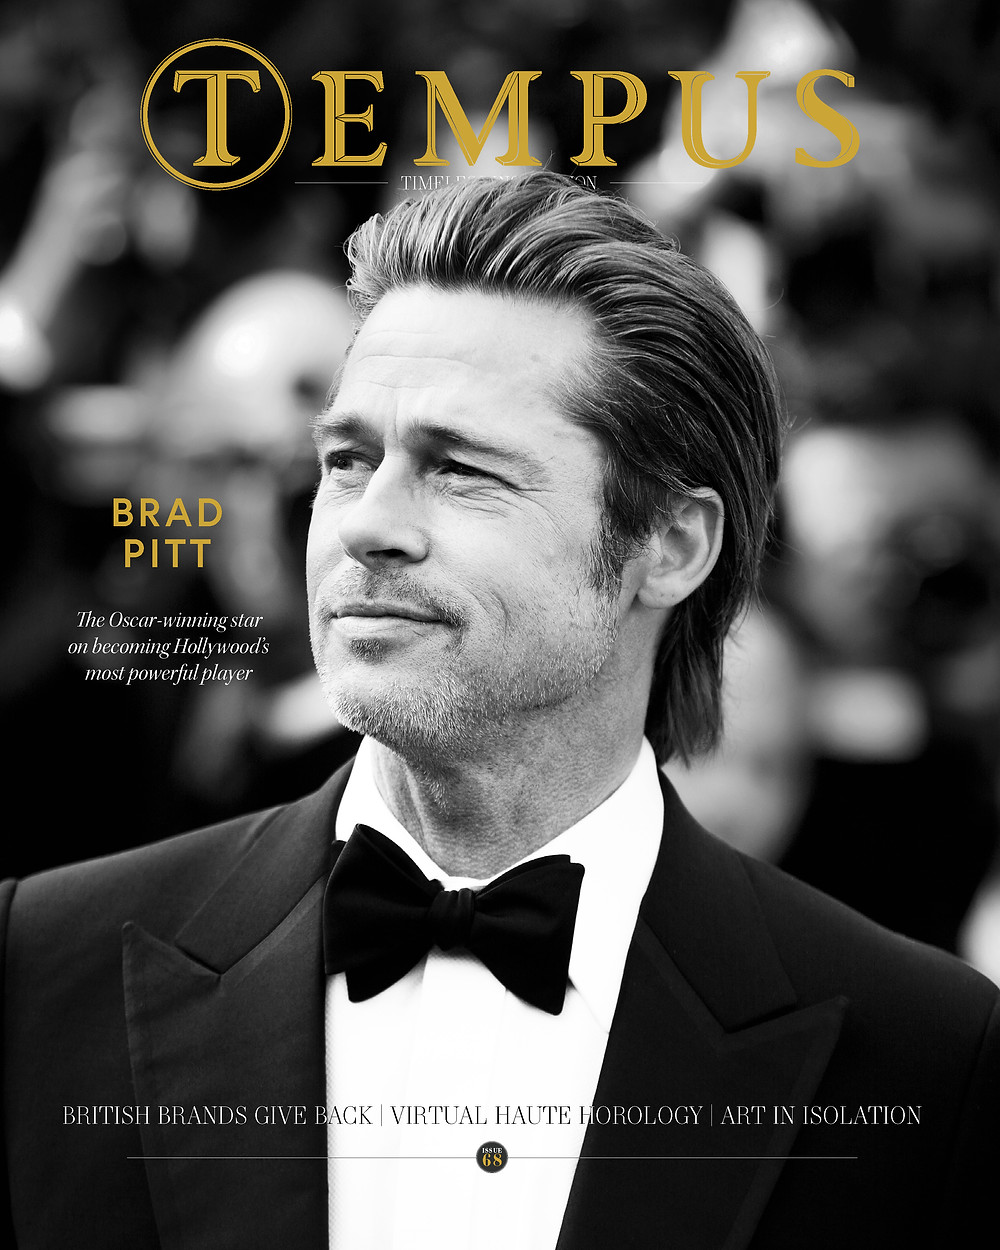 Brad Pitt on the cover of Tempus Magazine issue 68, June/July 2020